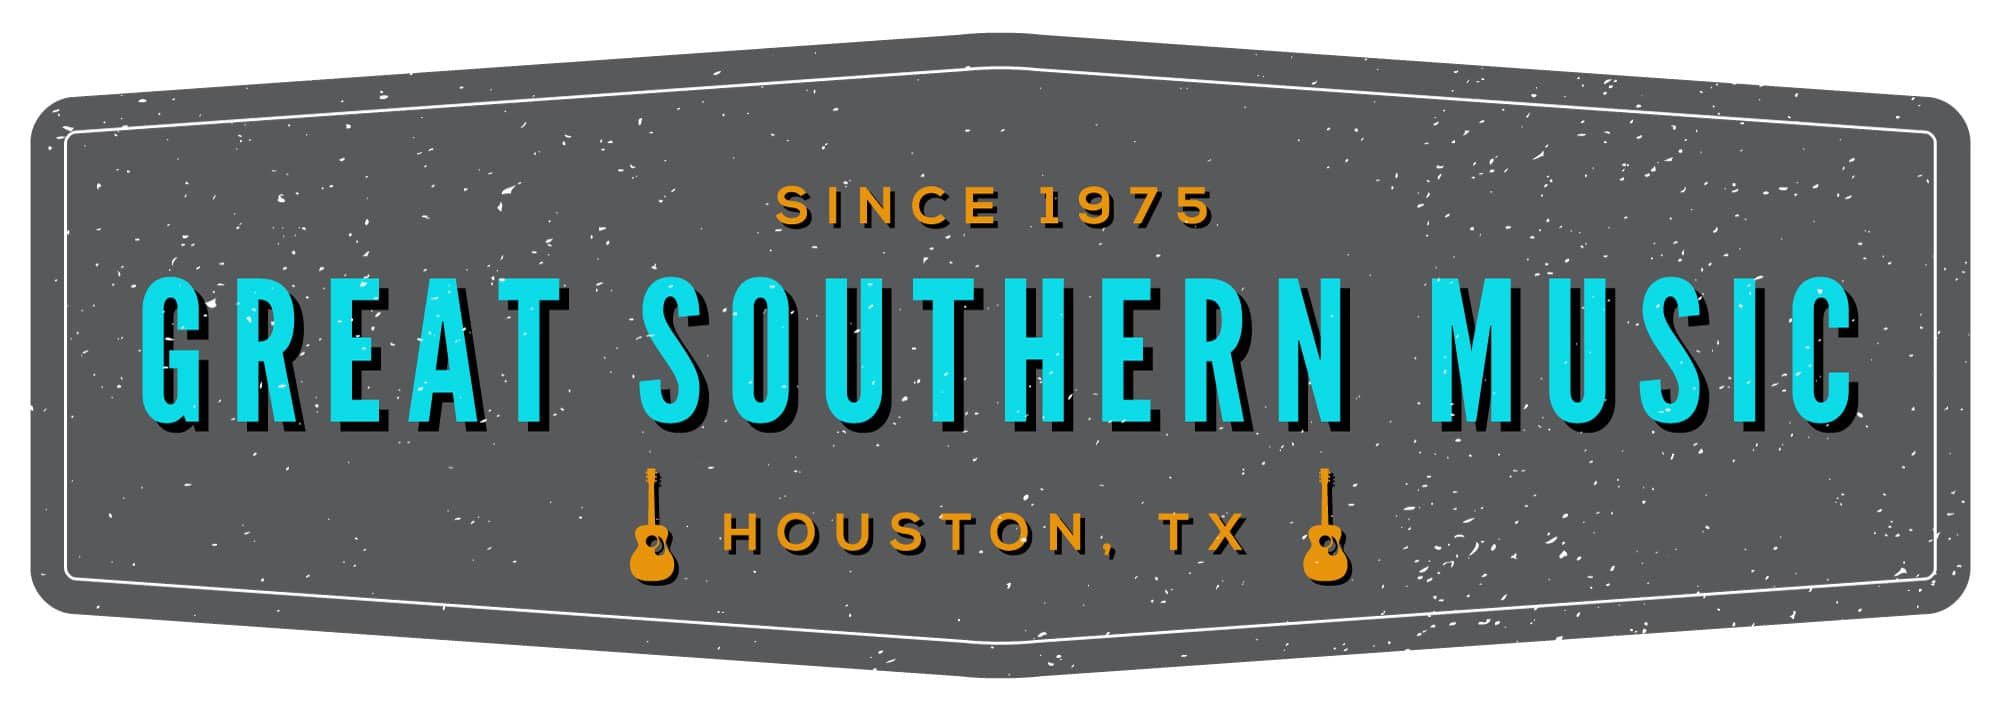 Great Southern Music Logo 2014